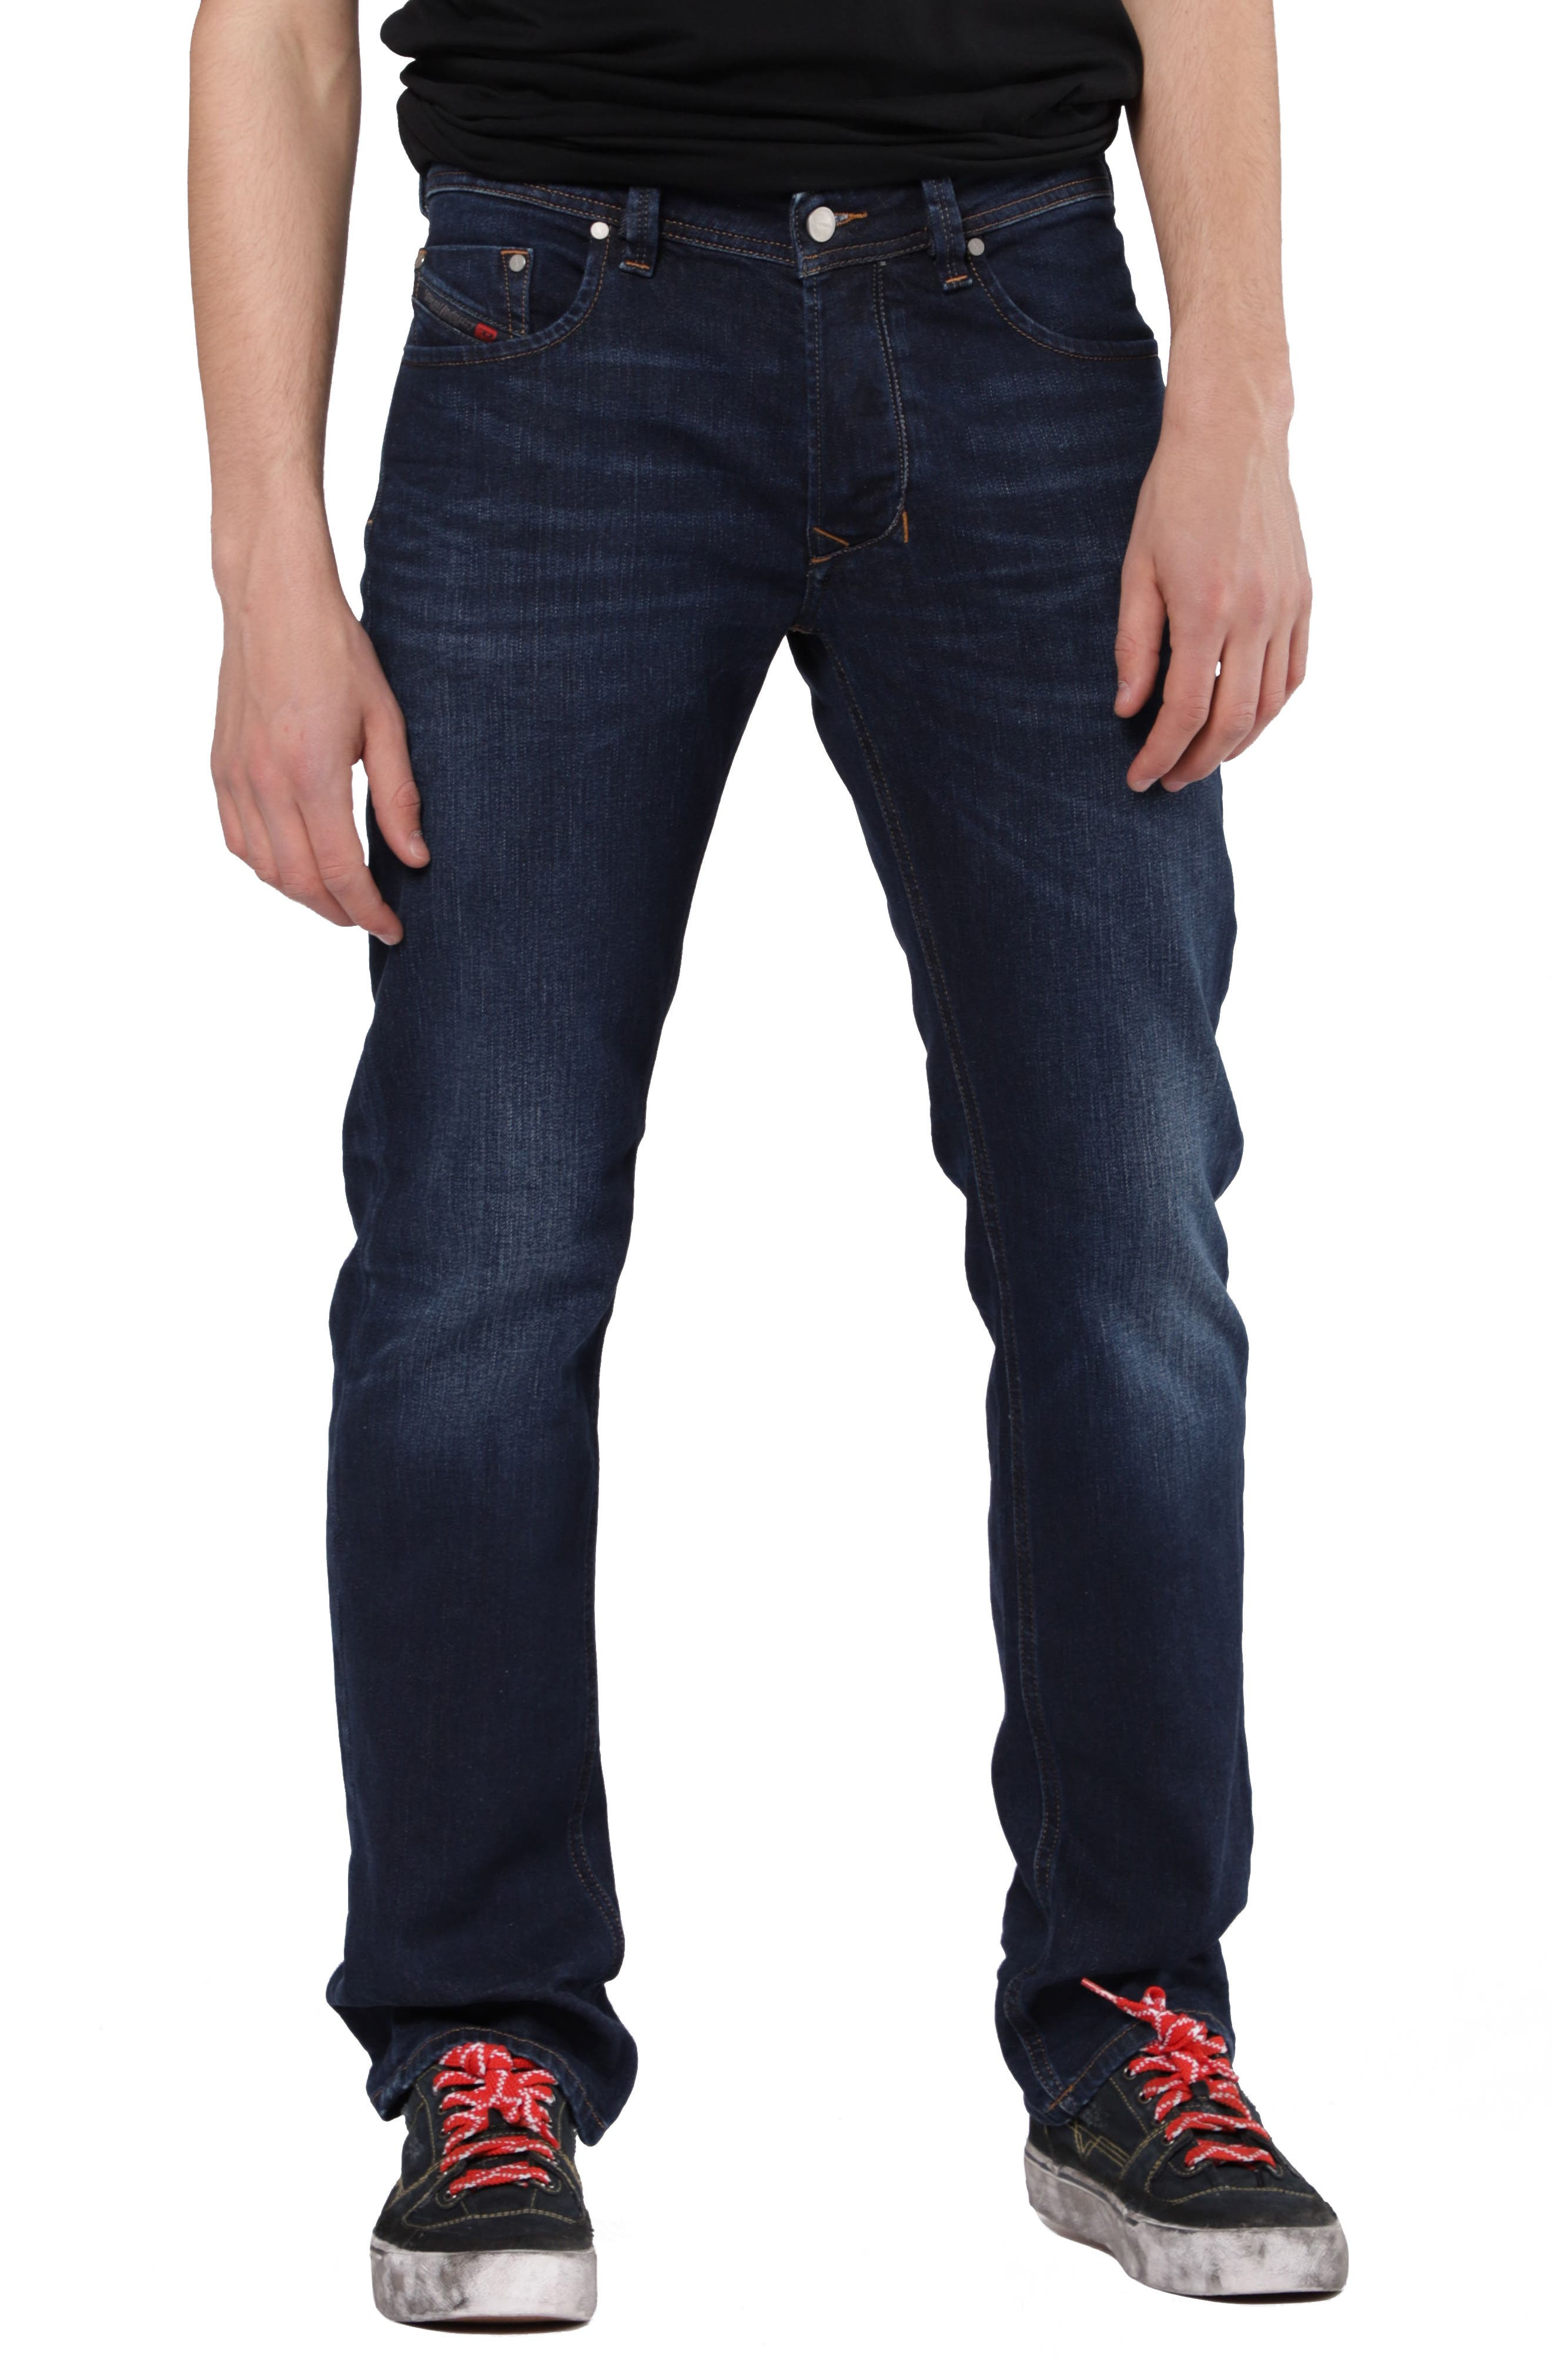 Larkee Relaxed Fit Jeans,                         Main,                         color, 084VG